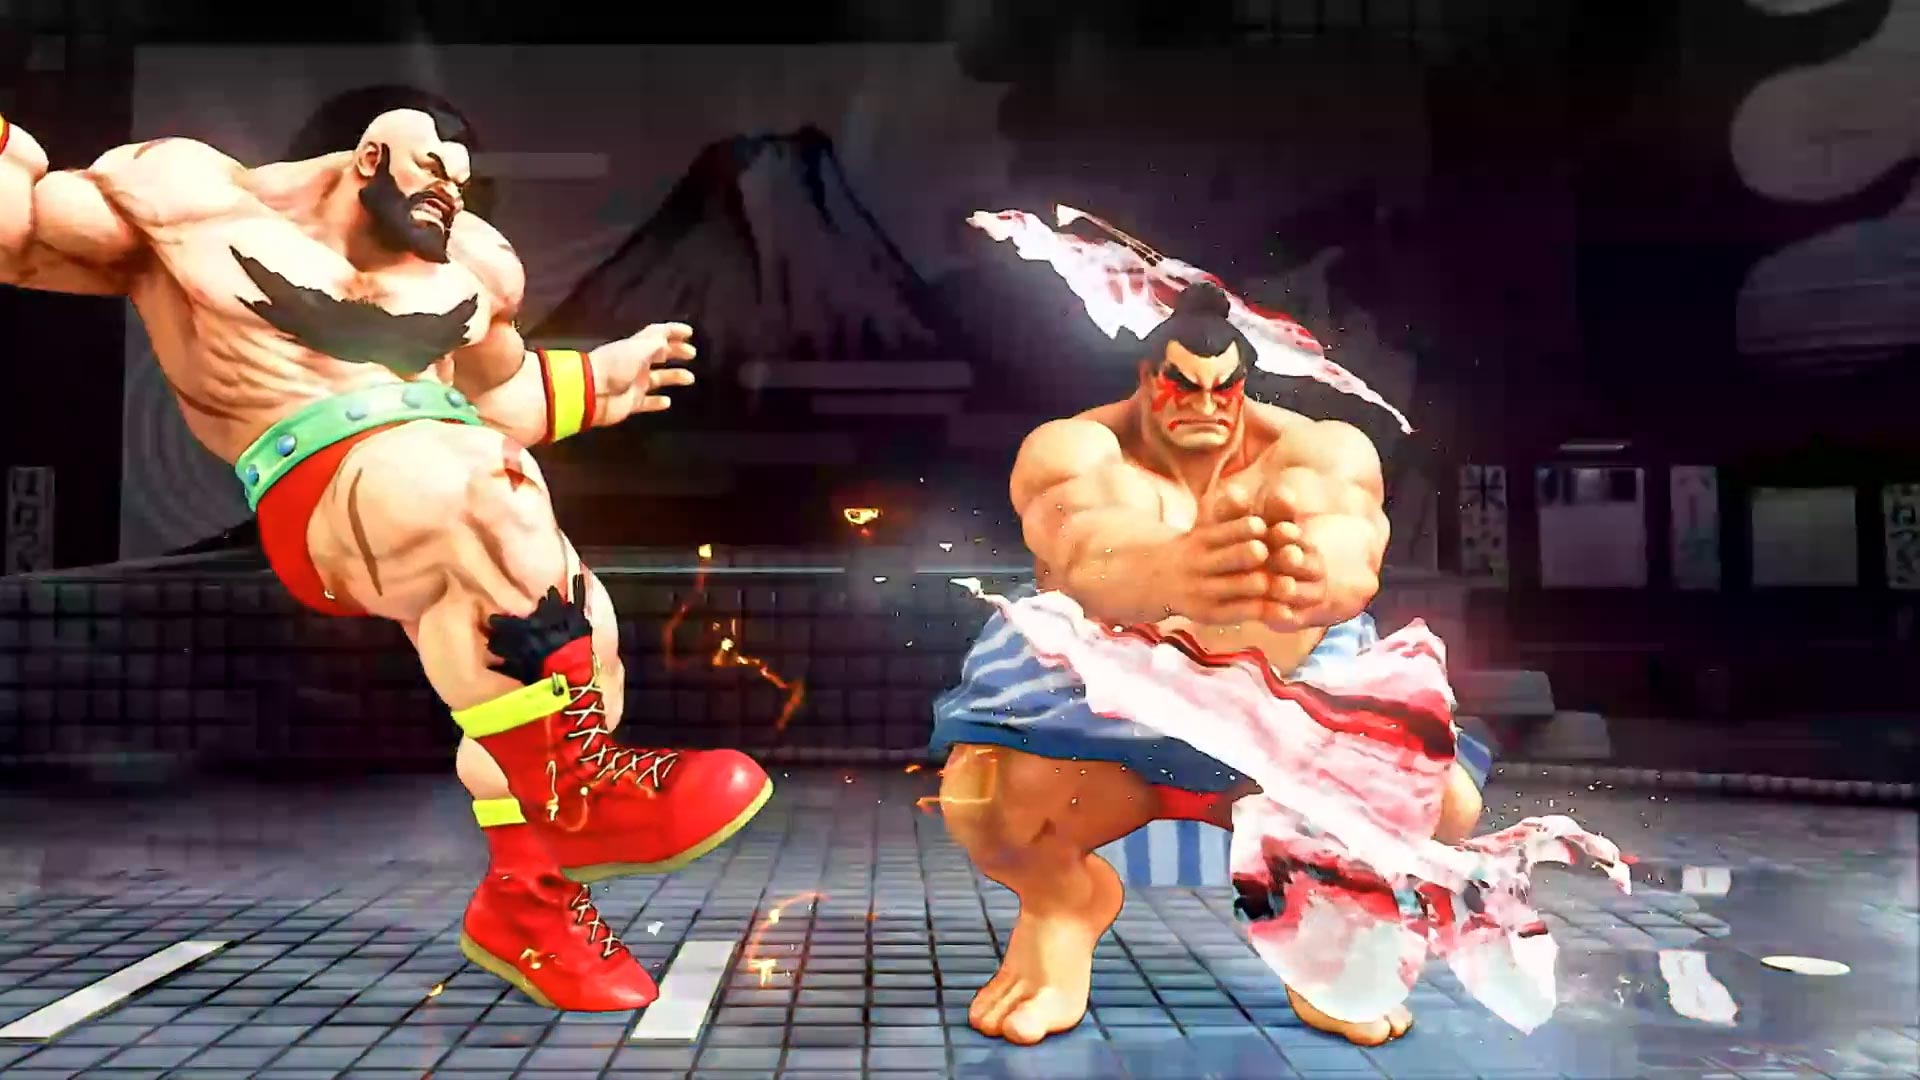 Street Fighter 5 leaked gallery of E. Honda, Lucia and Poison 21 out of 35 image gallery